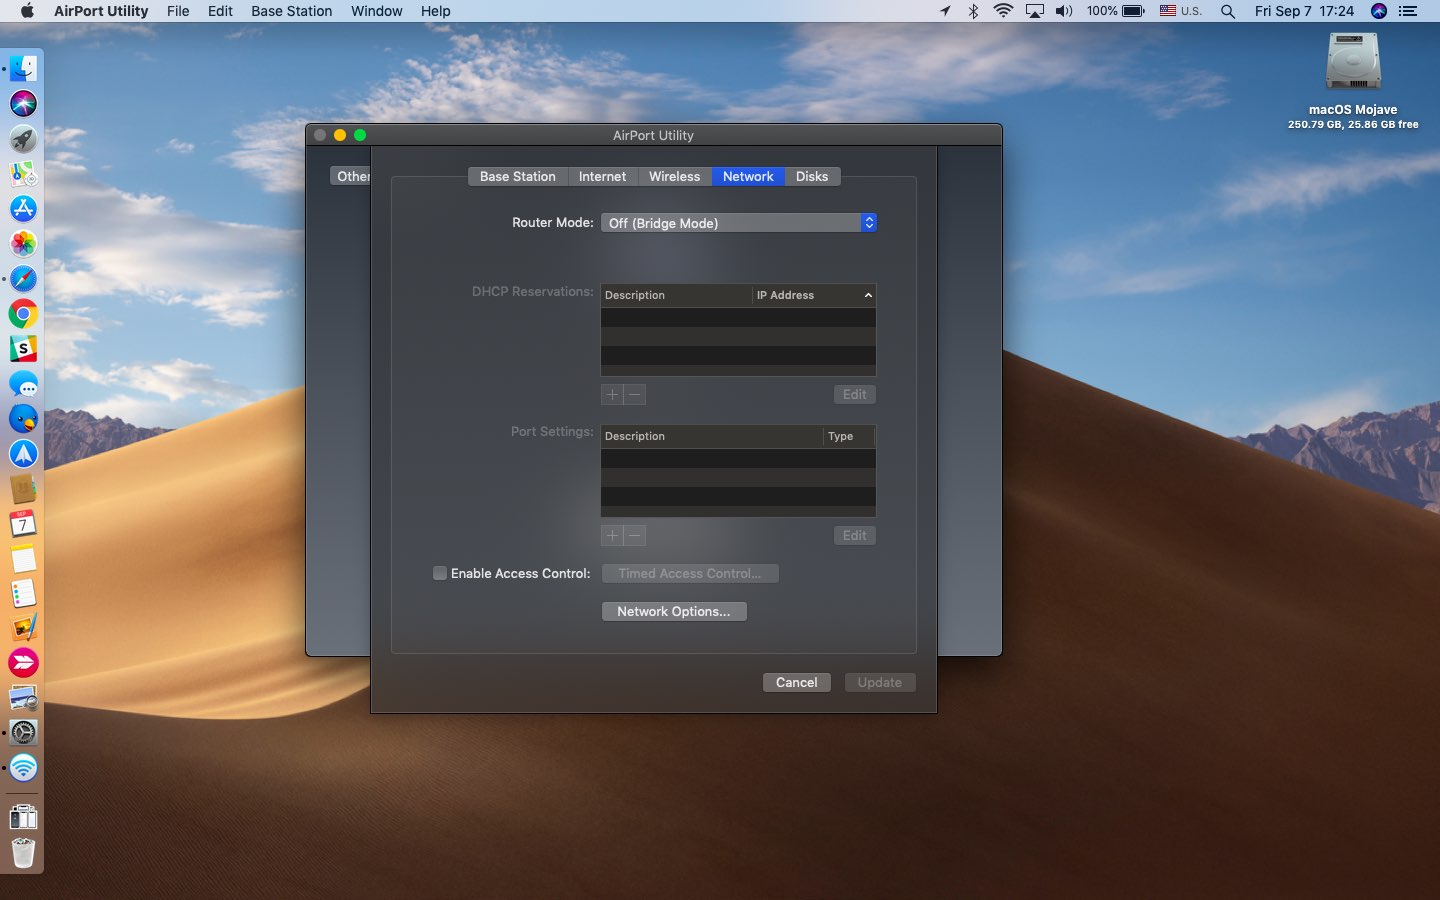 AirPort Utility for iPhone running on macOS Mojave